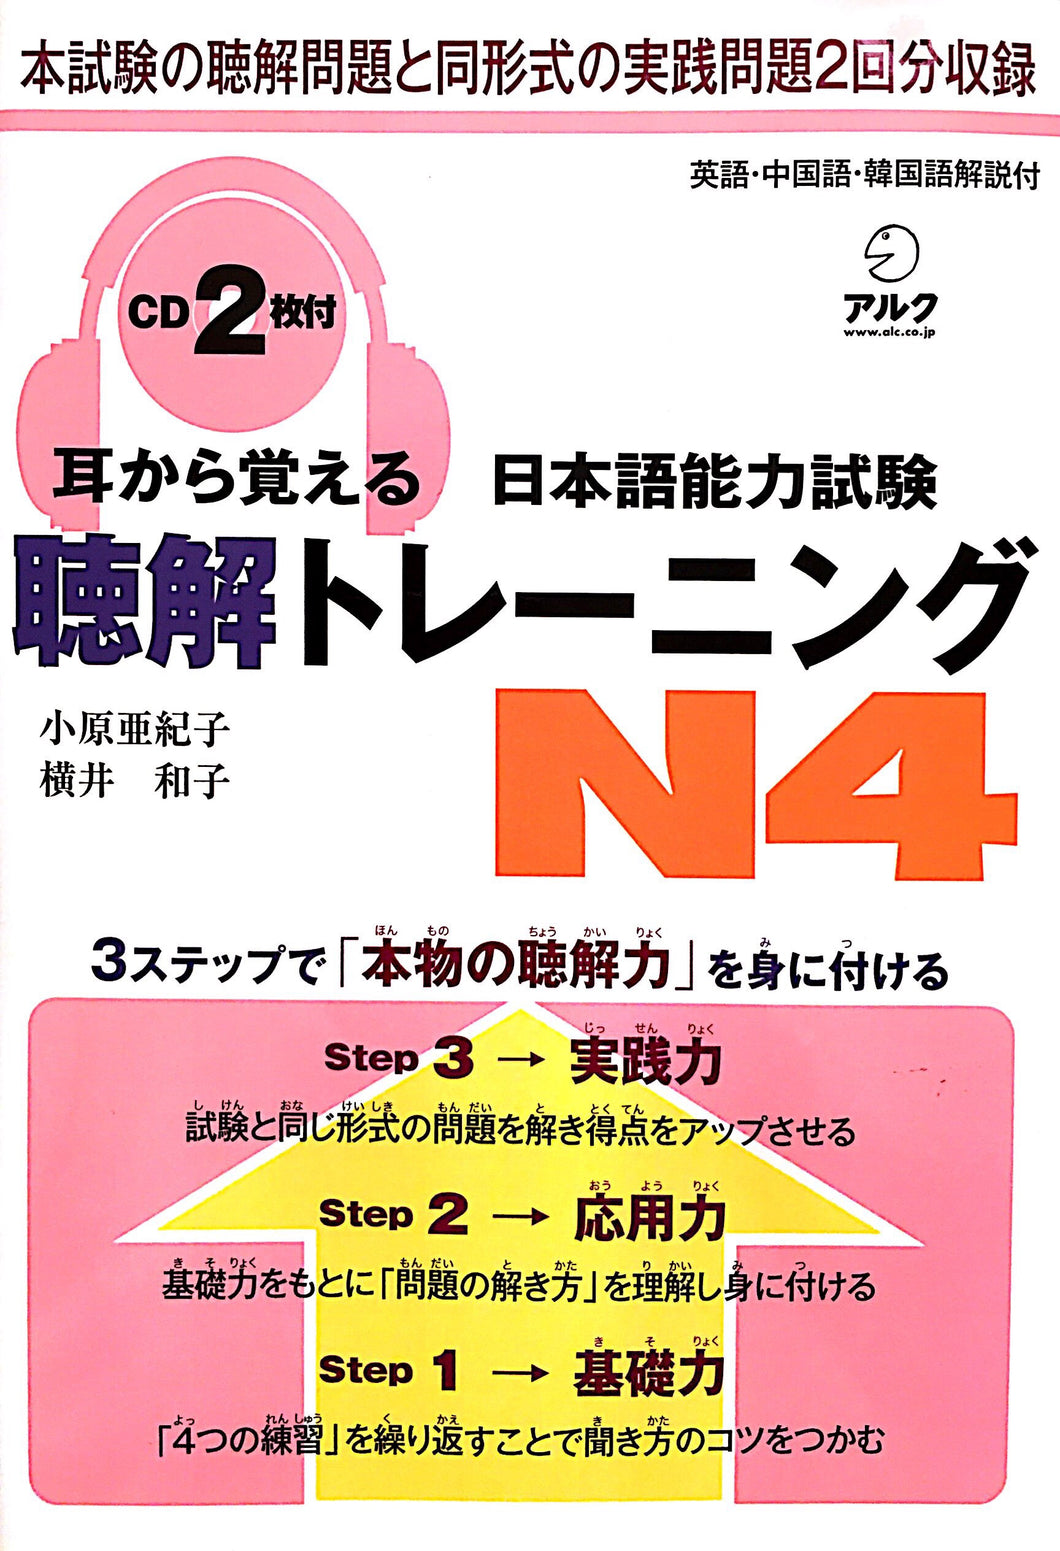 Mimi Kara Oboeru JLPT N4 Listening with 2 CDs - The Japan Shop